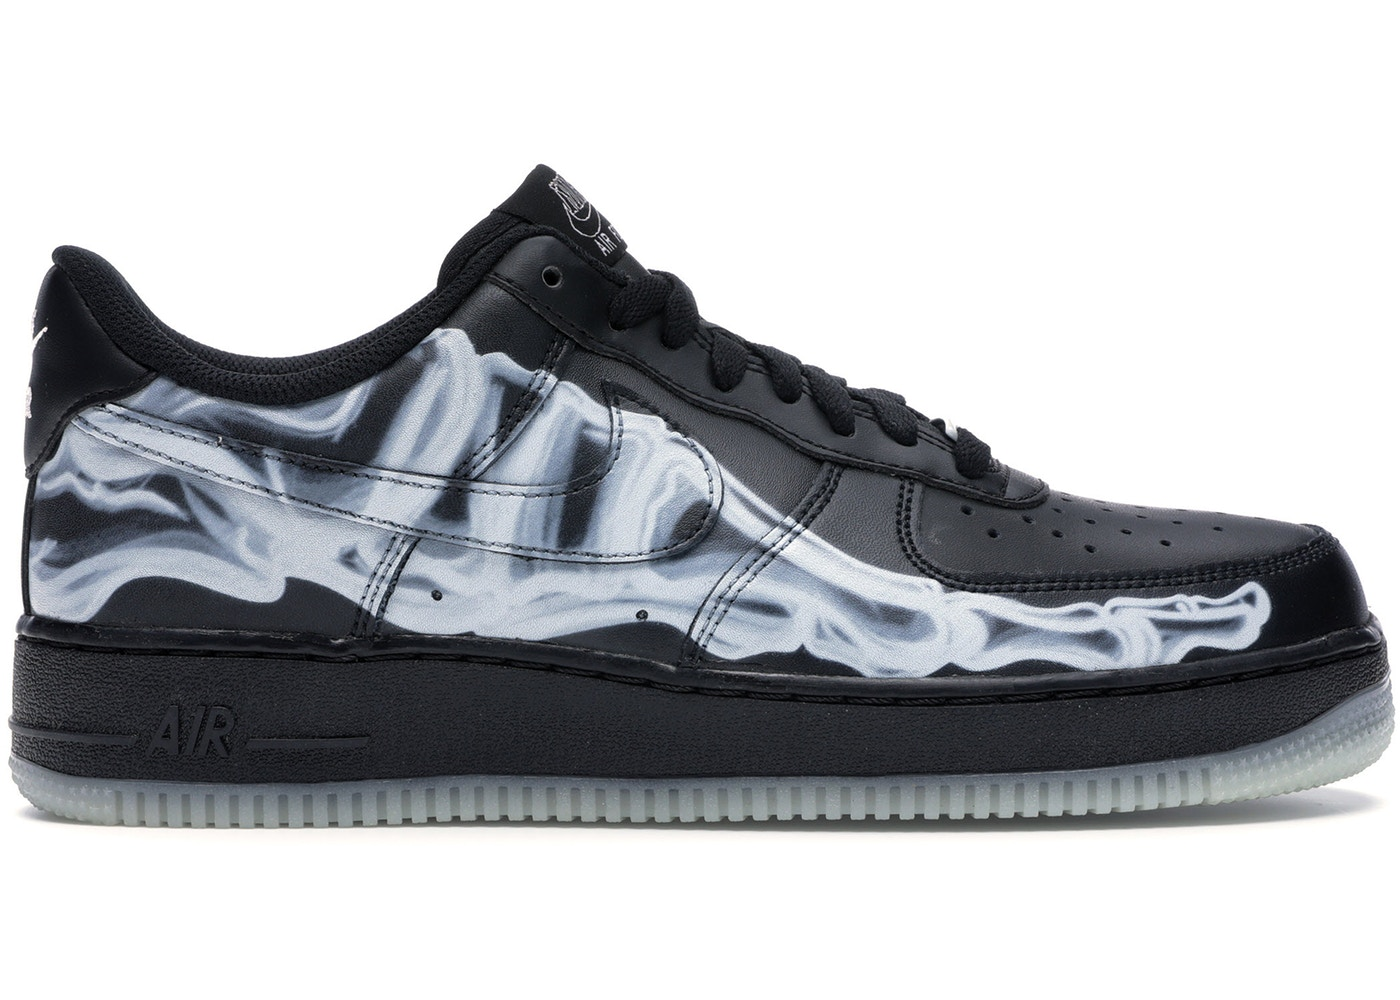 more photos best deals on reputable site Nike Air Force 1 Low Black Skeleton - BQ7541 001